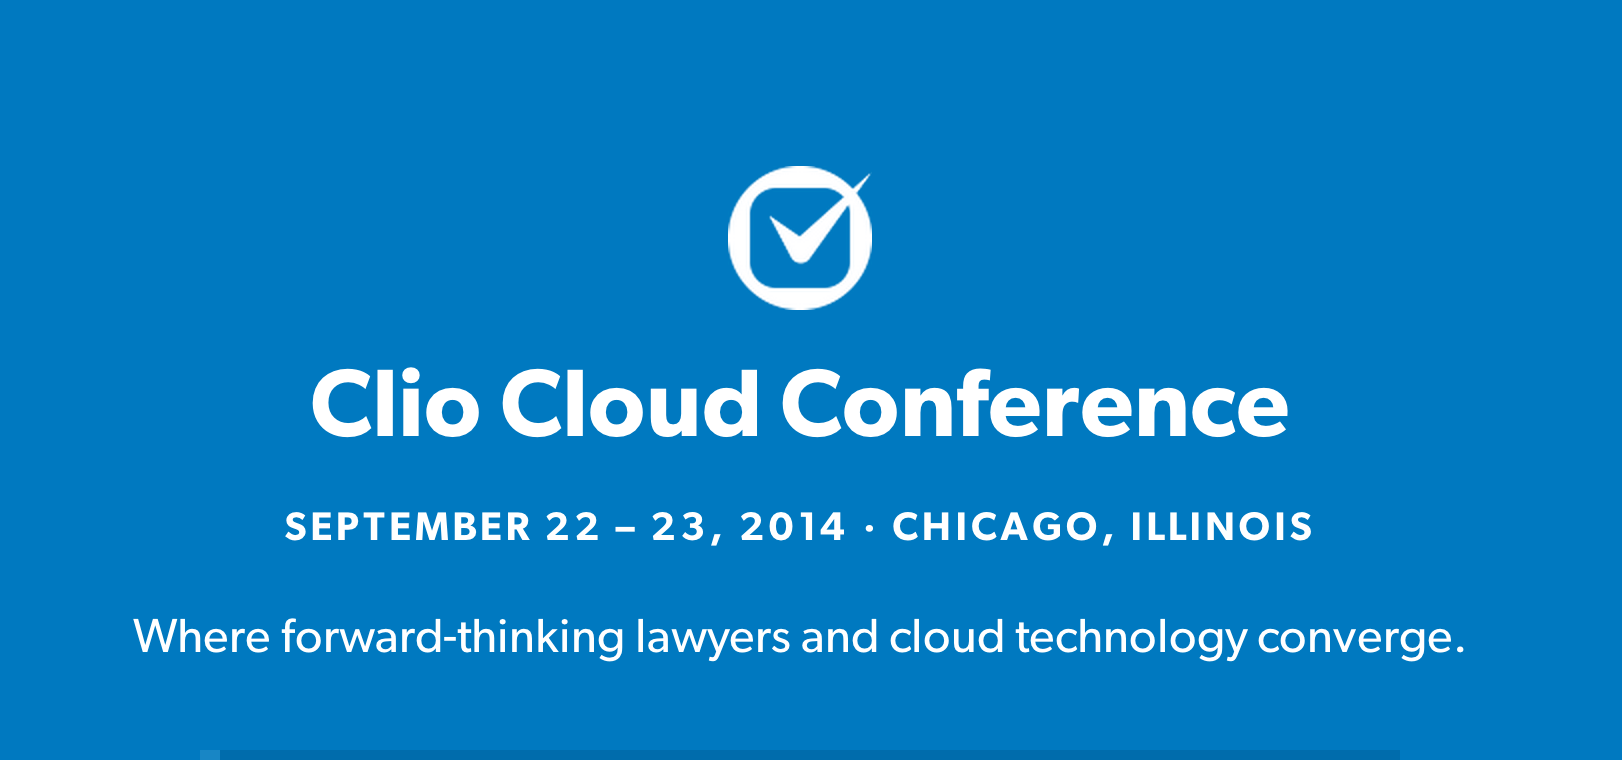 clio cloud conference 2014